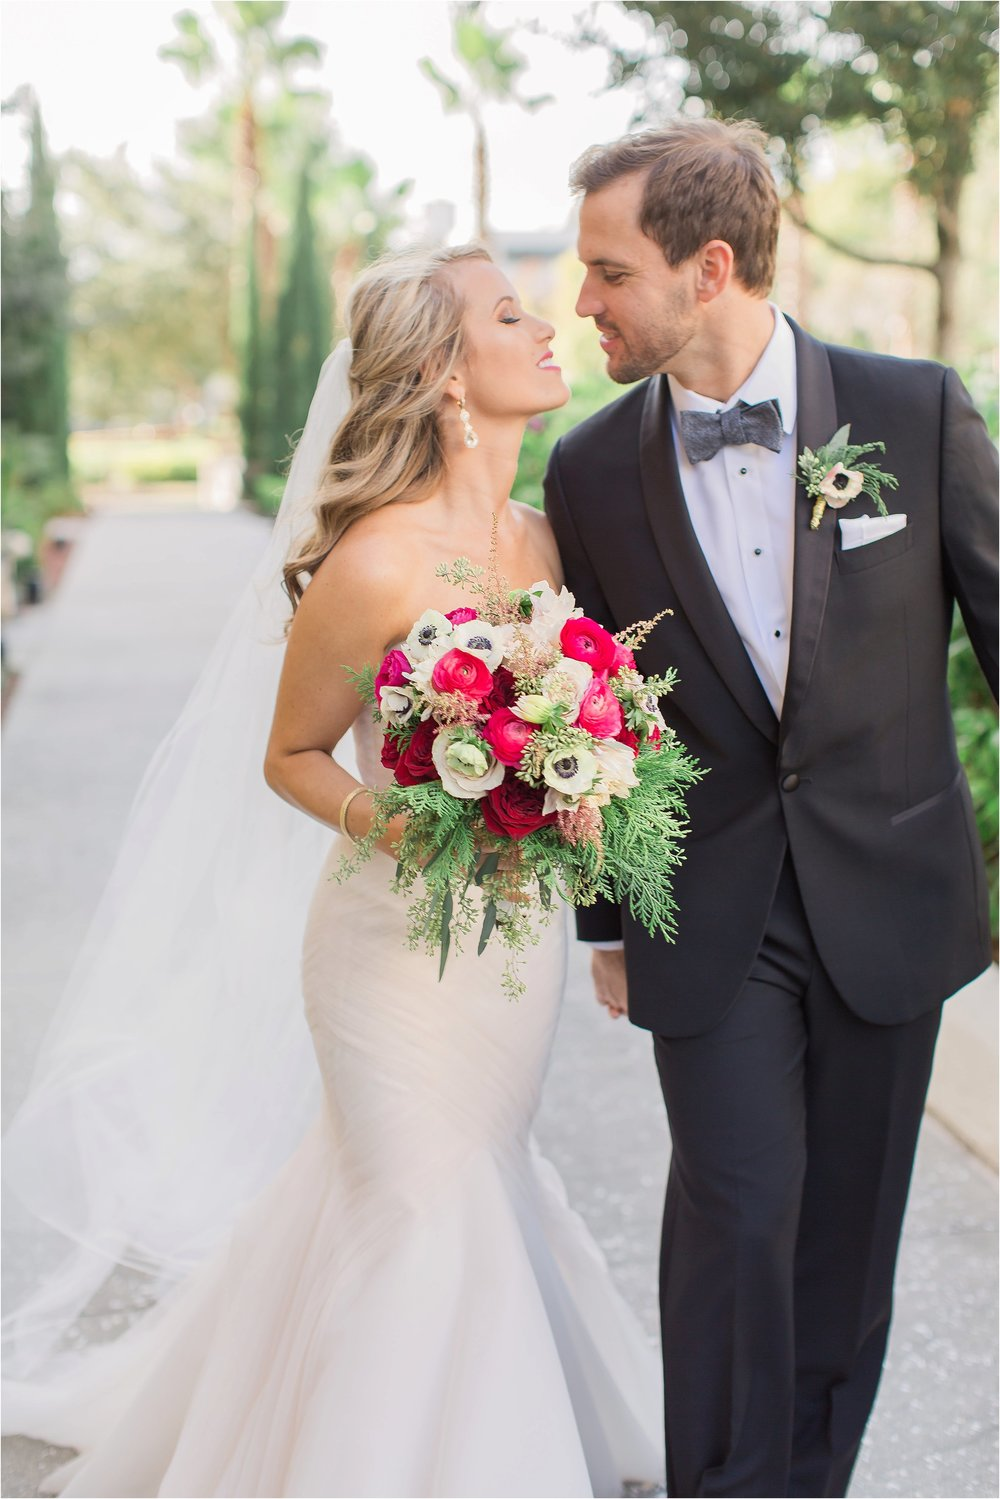 Casa_Feliz_Alfond_Inn_Winter_WeddingndhamGrandWedding_0078.jpg